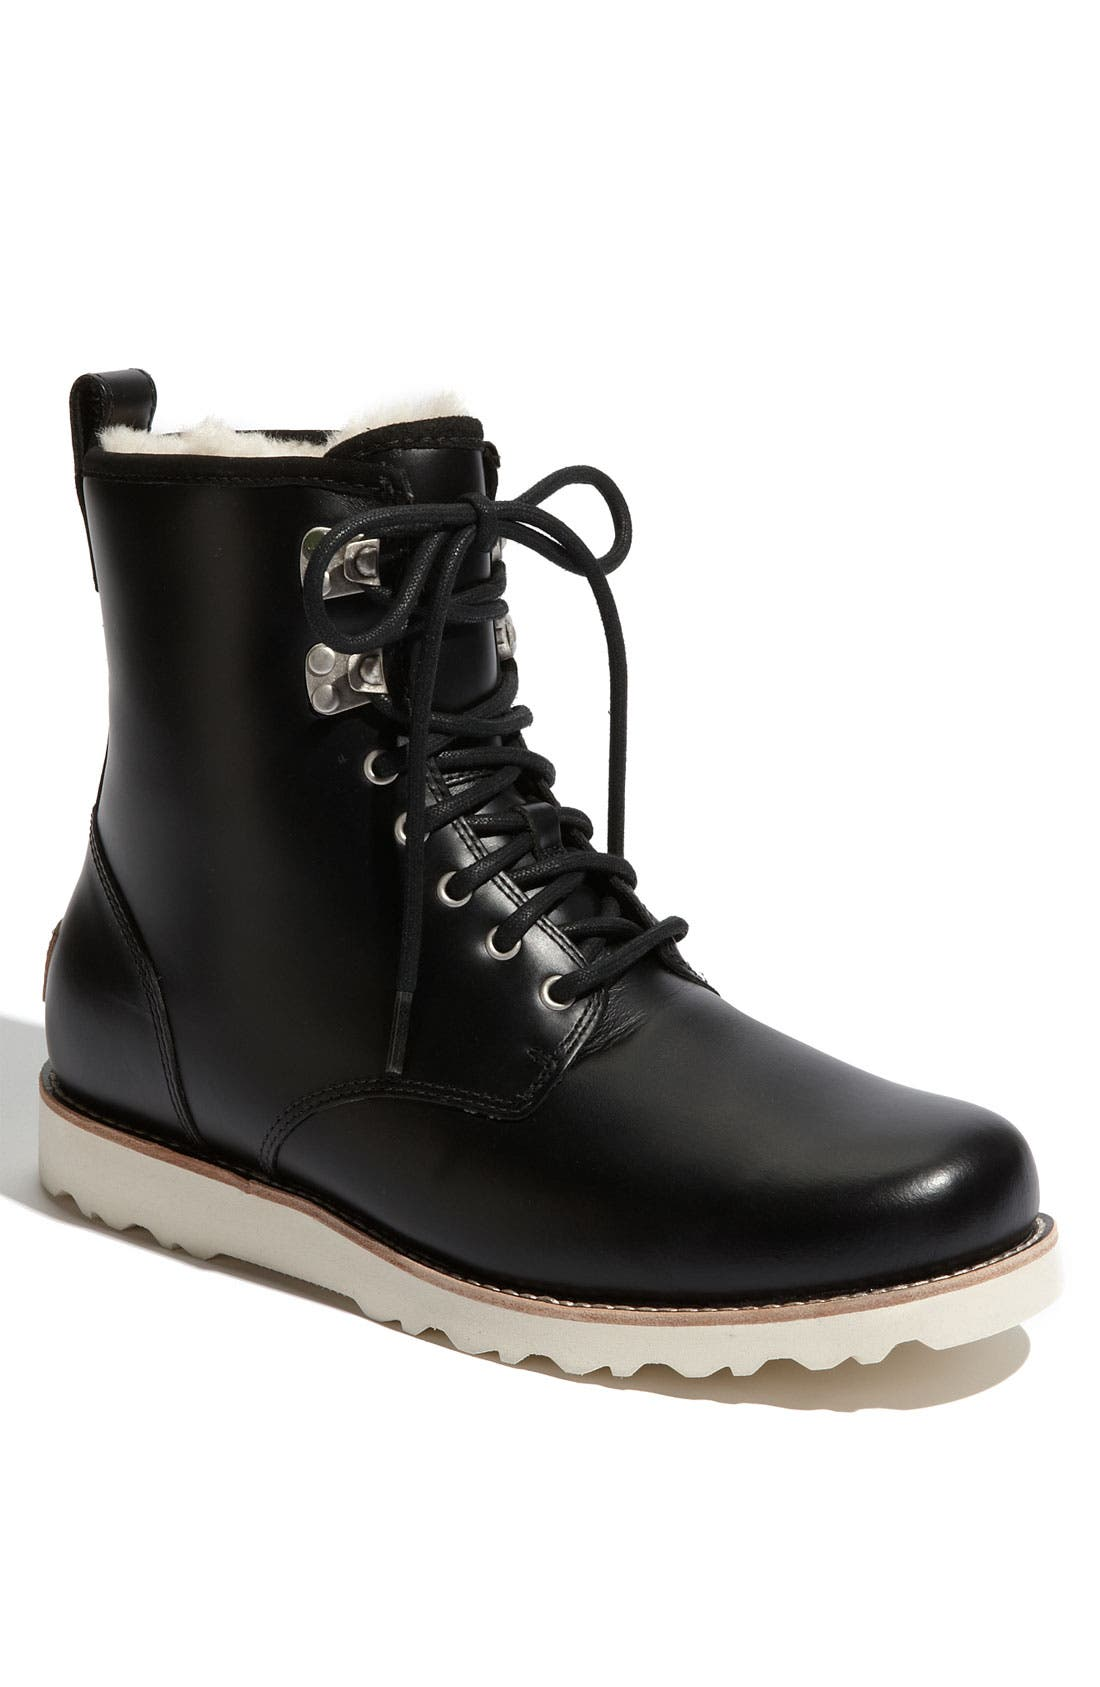 Alternate Image 1 Selected - UGG® Australia 'Hannen' Boot (Men)